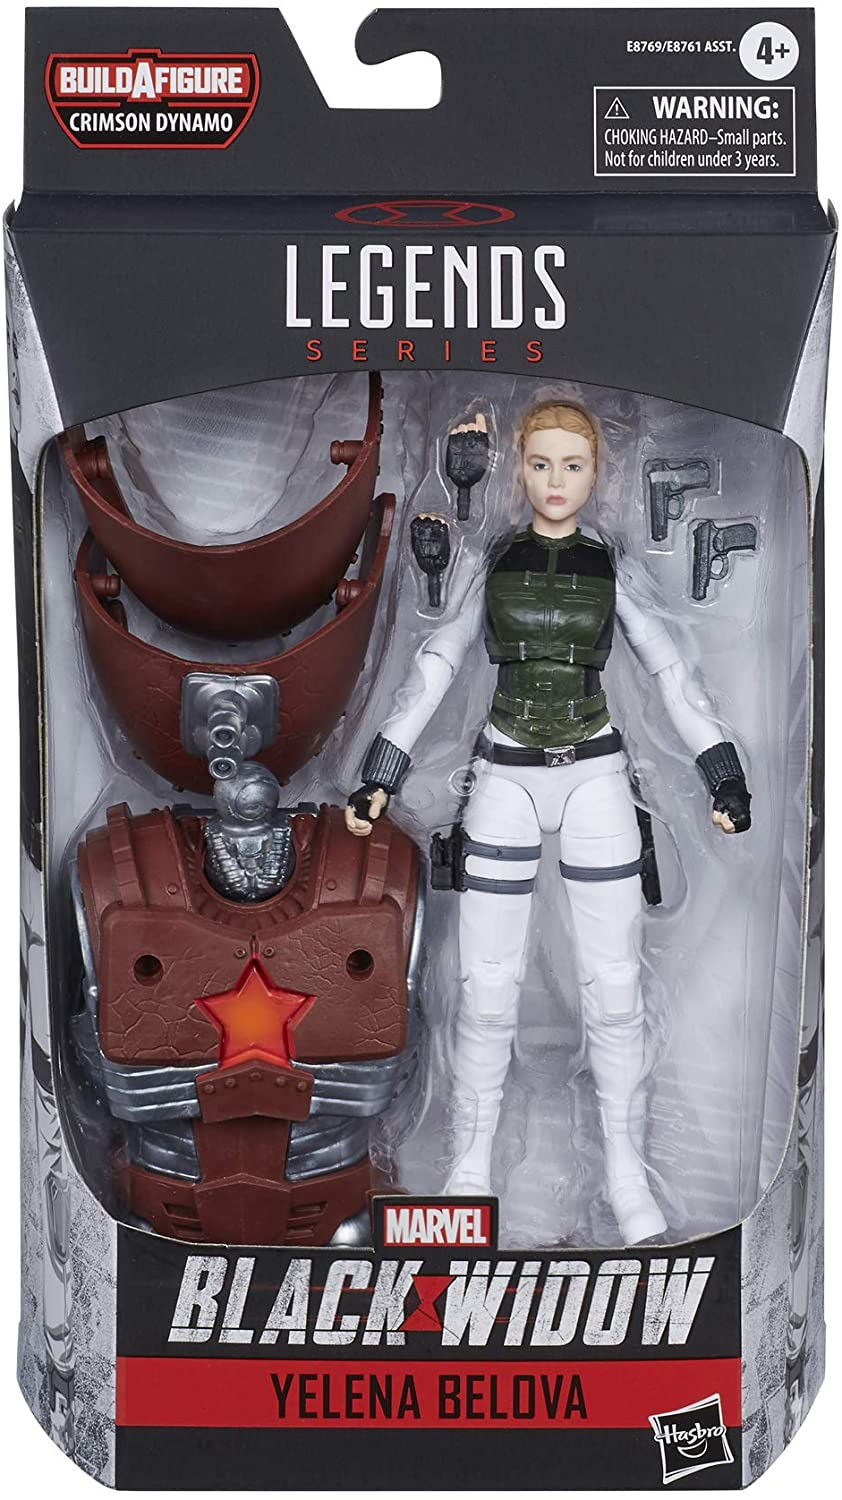 Marvel Hasbro Black Widow Legends Series 6-inch Collectible Action Figure Toy